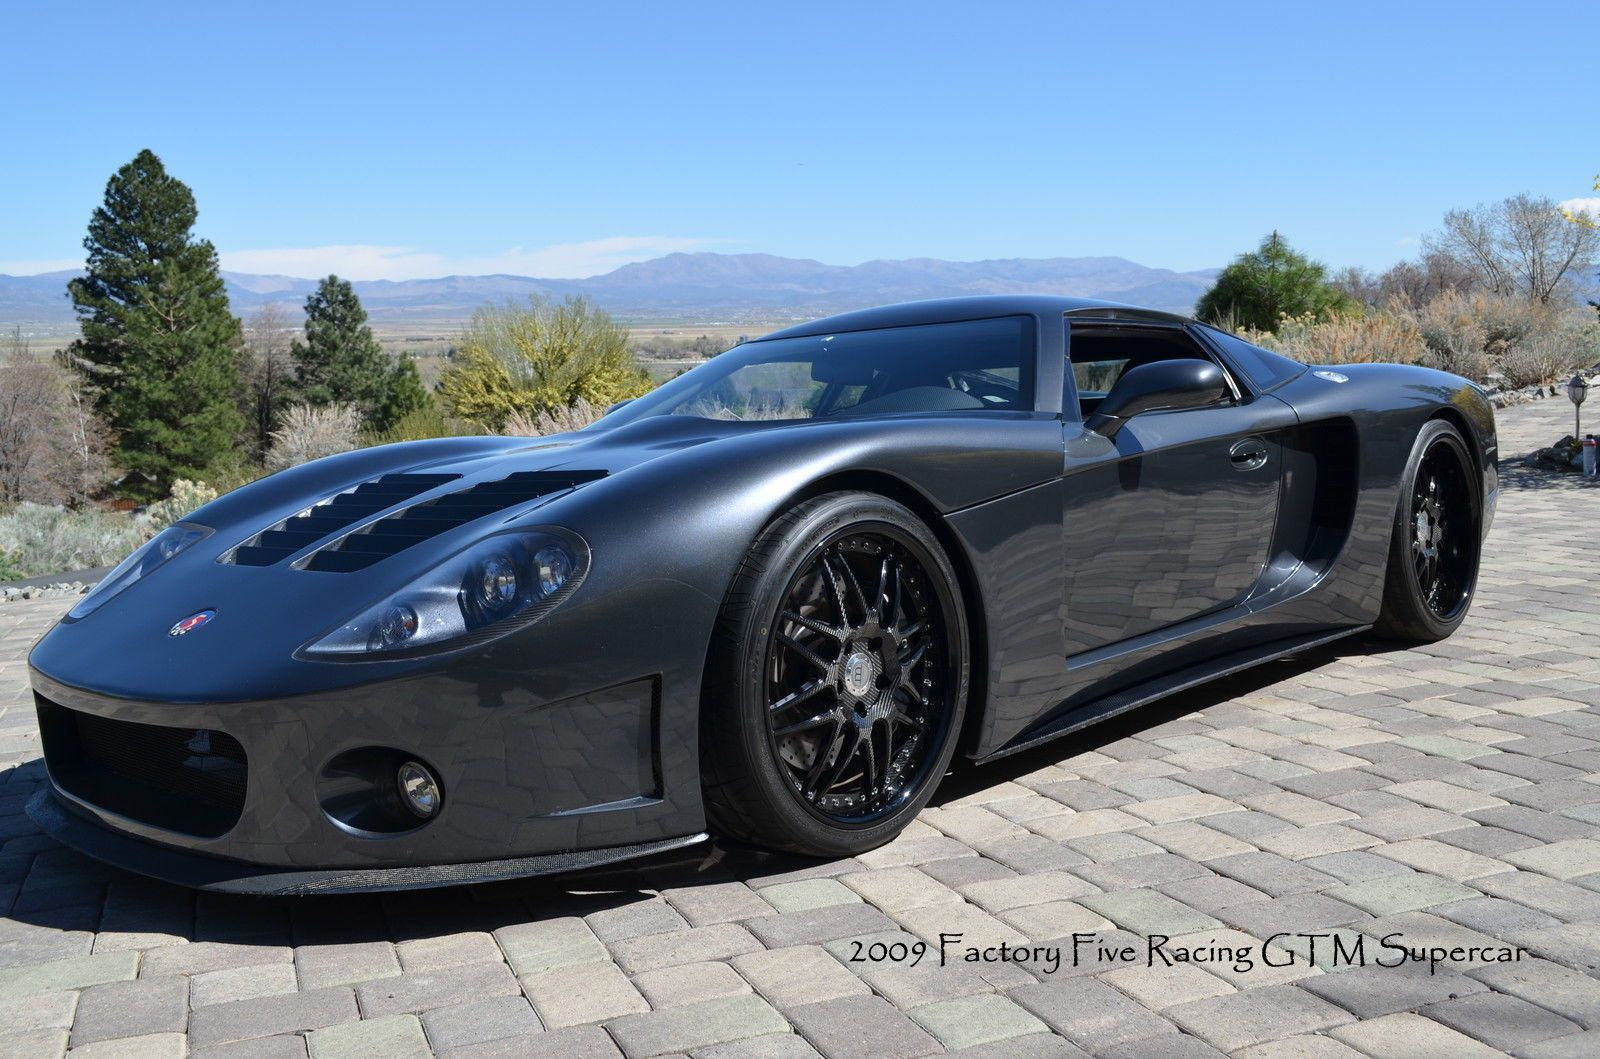 2009 Factory Five Racing Gtm Supercar Factory Five Super Cars Fast Sports Cars